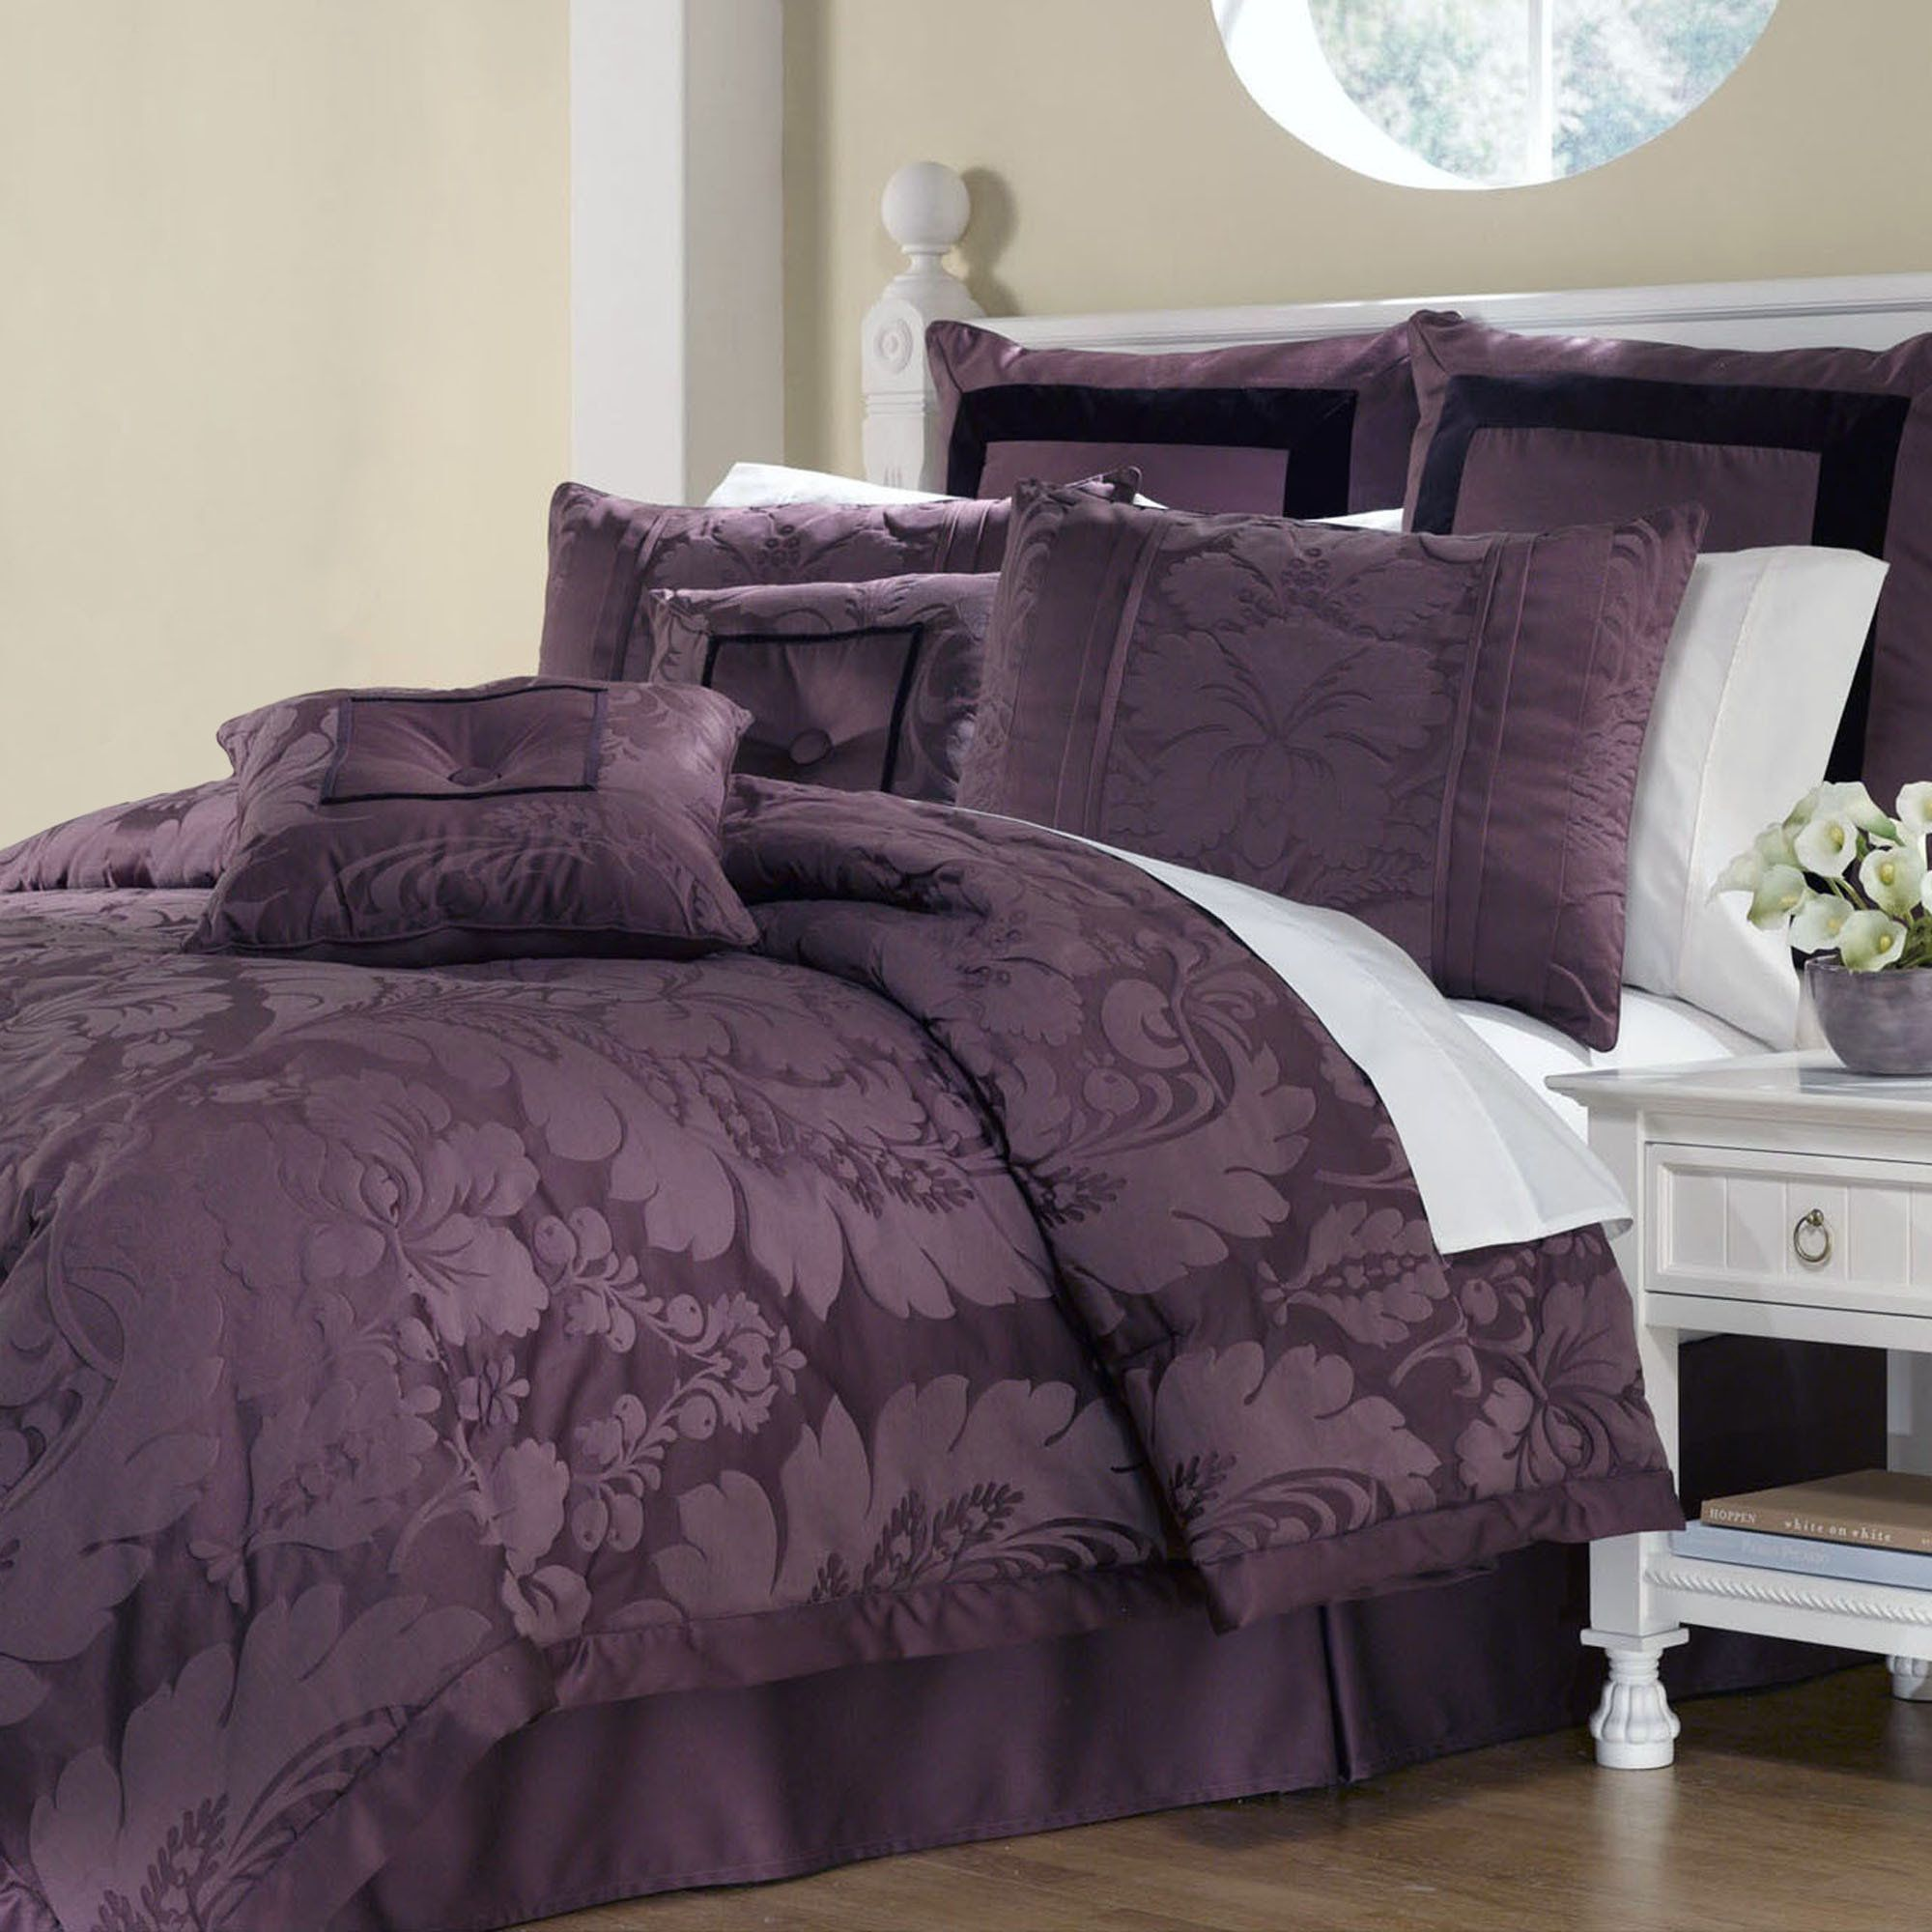 lorenzo damask 8 pc comforter bed set | bed sets, comforter and